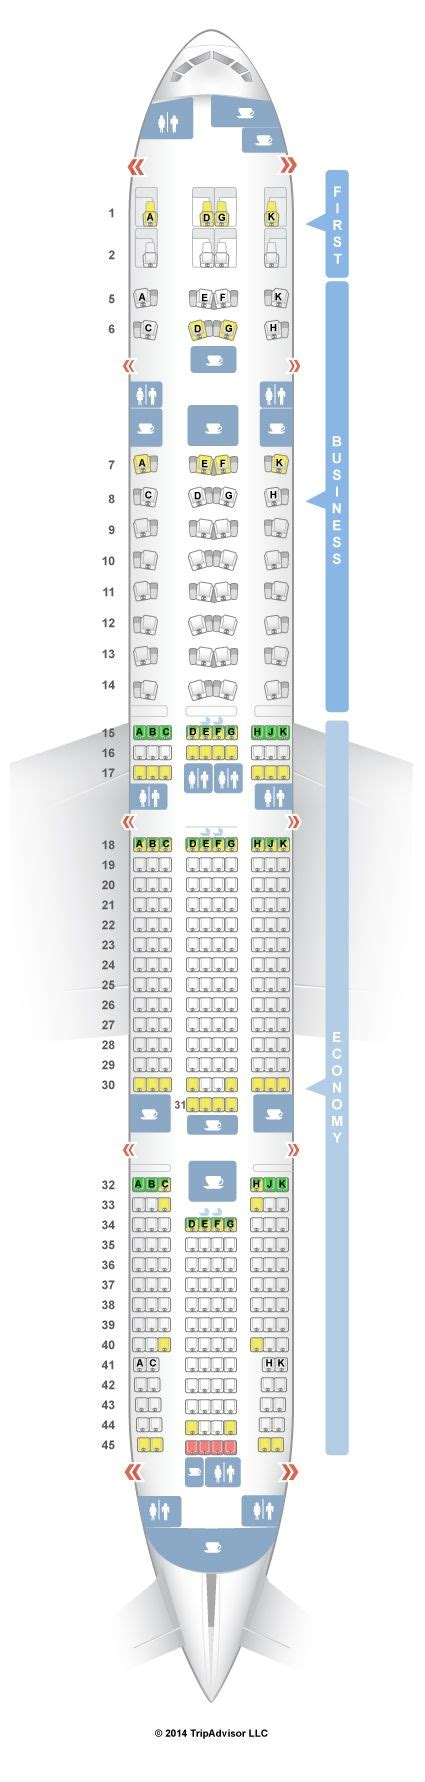 777 300er seat map 20 best ideas about boeing 777 300 seating on